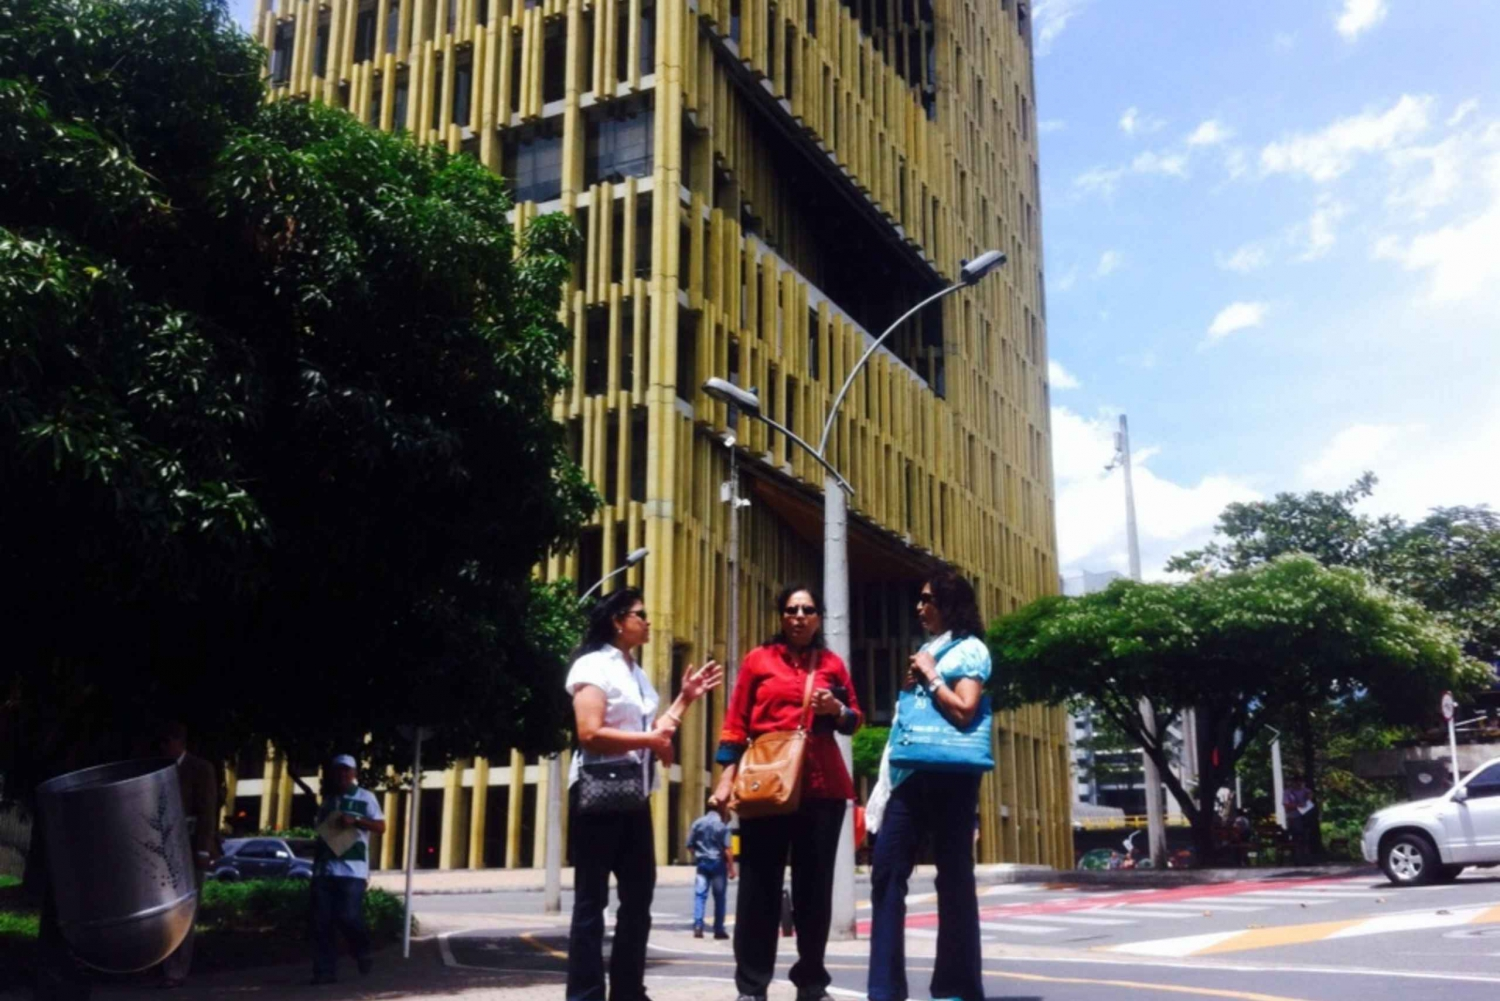 Medellín: 4-Hour Religious and Historical Tour